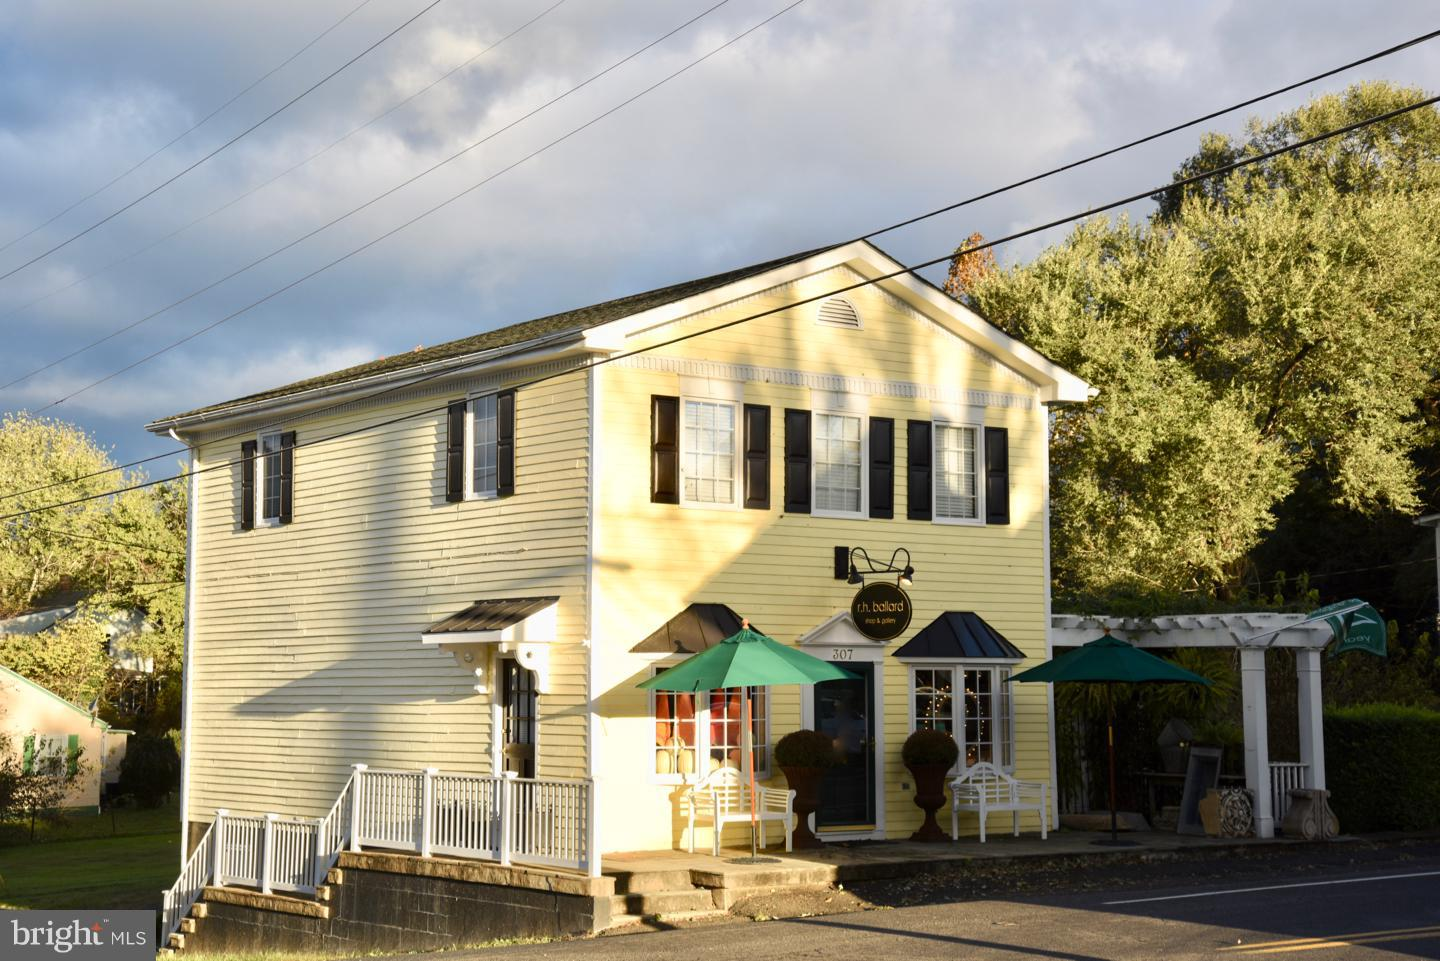 Commercial for Sale at 307 Main St Washington, Virginia 22747 United States